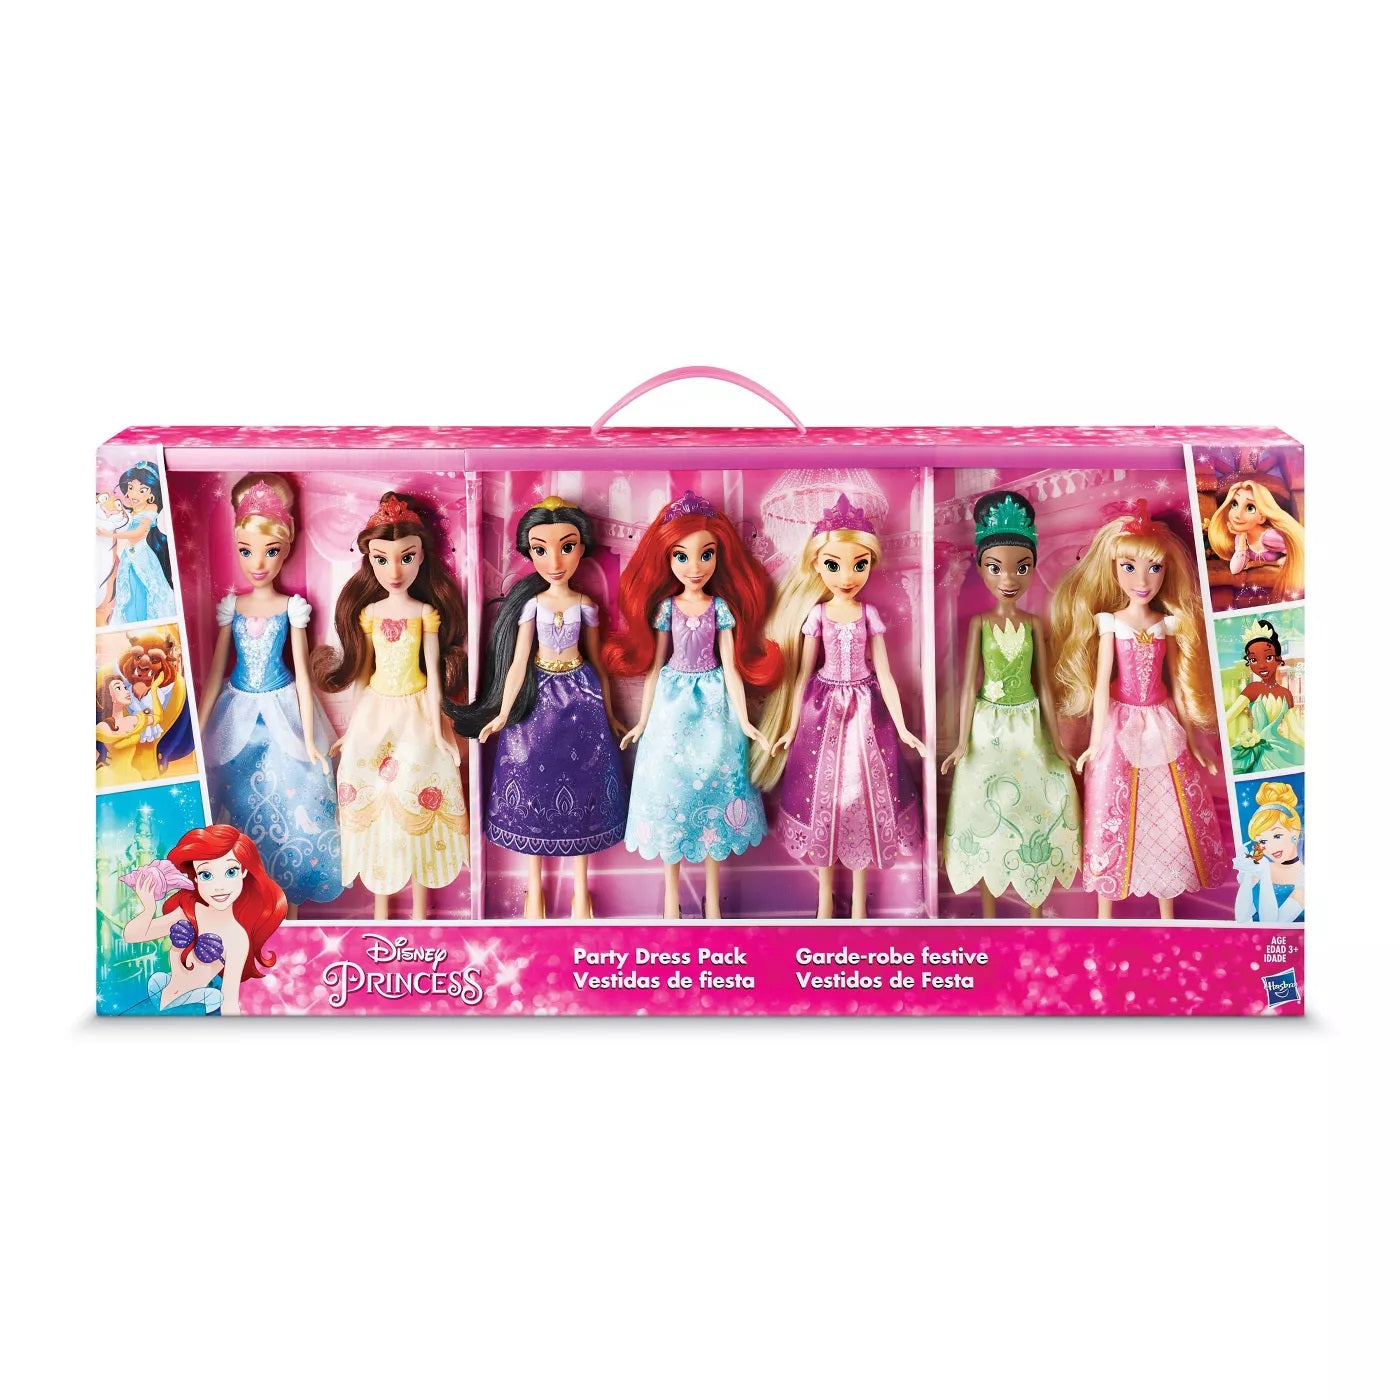 Disney Princess Party Dress Pack - Set of 7 Dolls